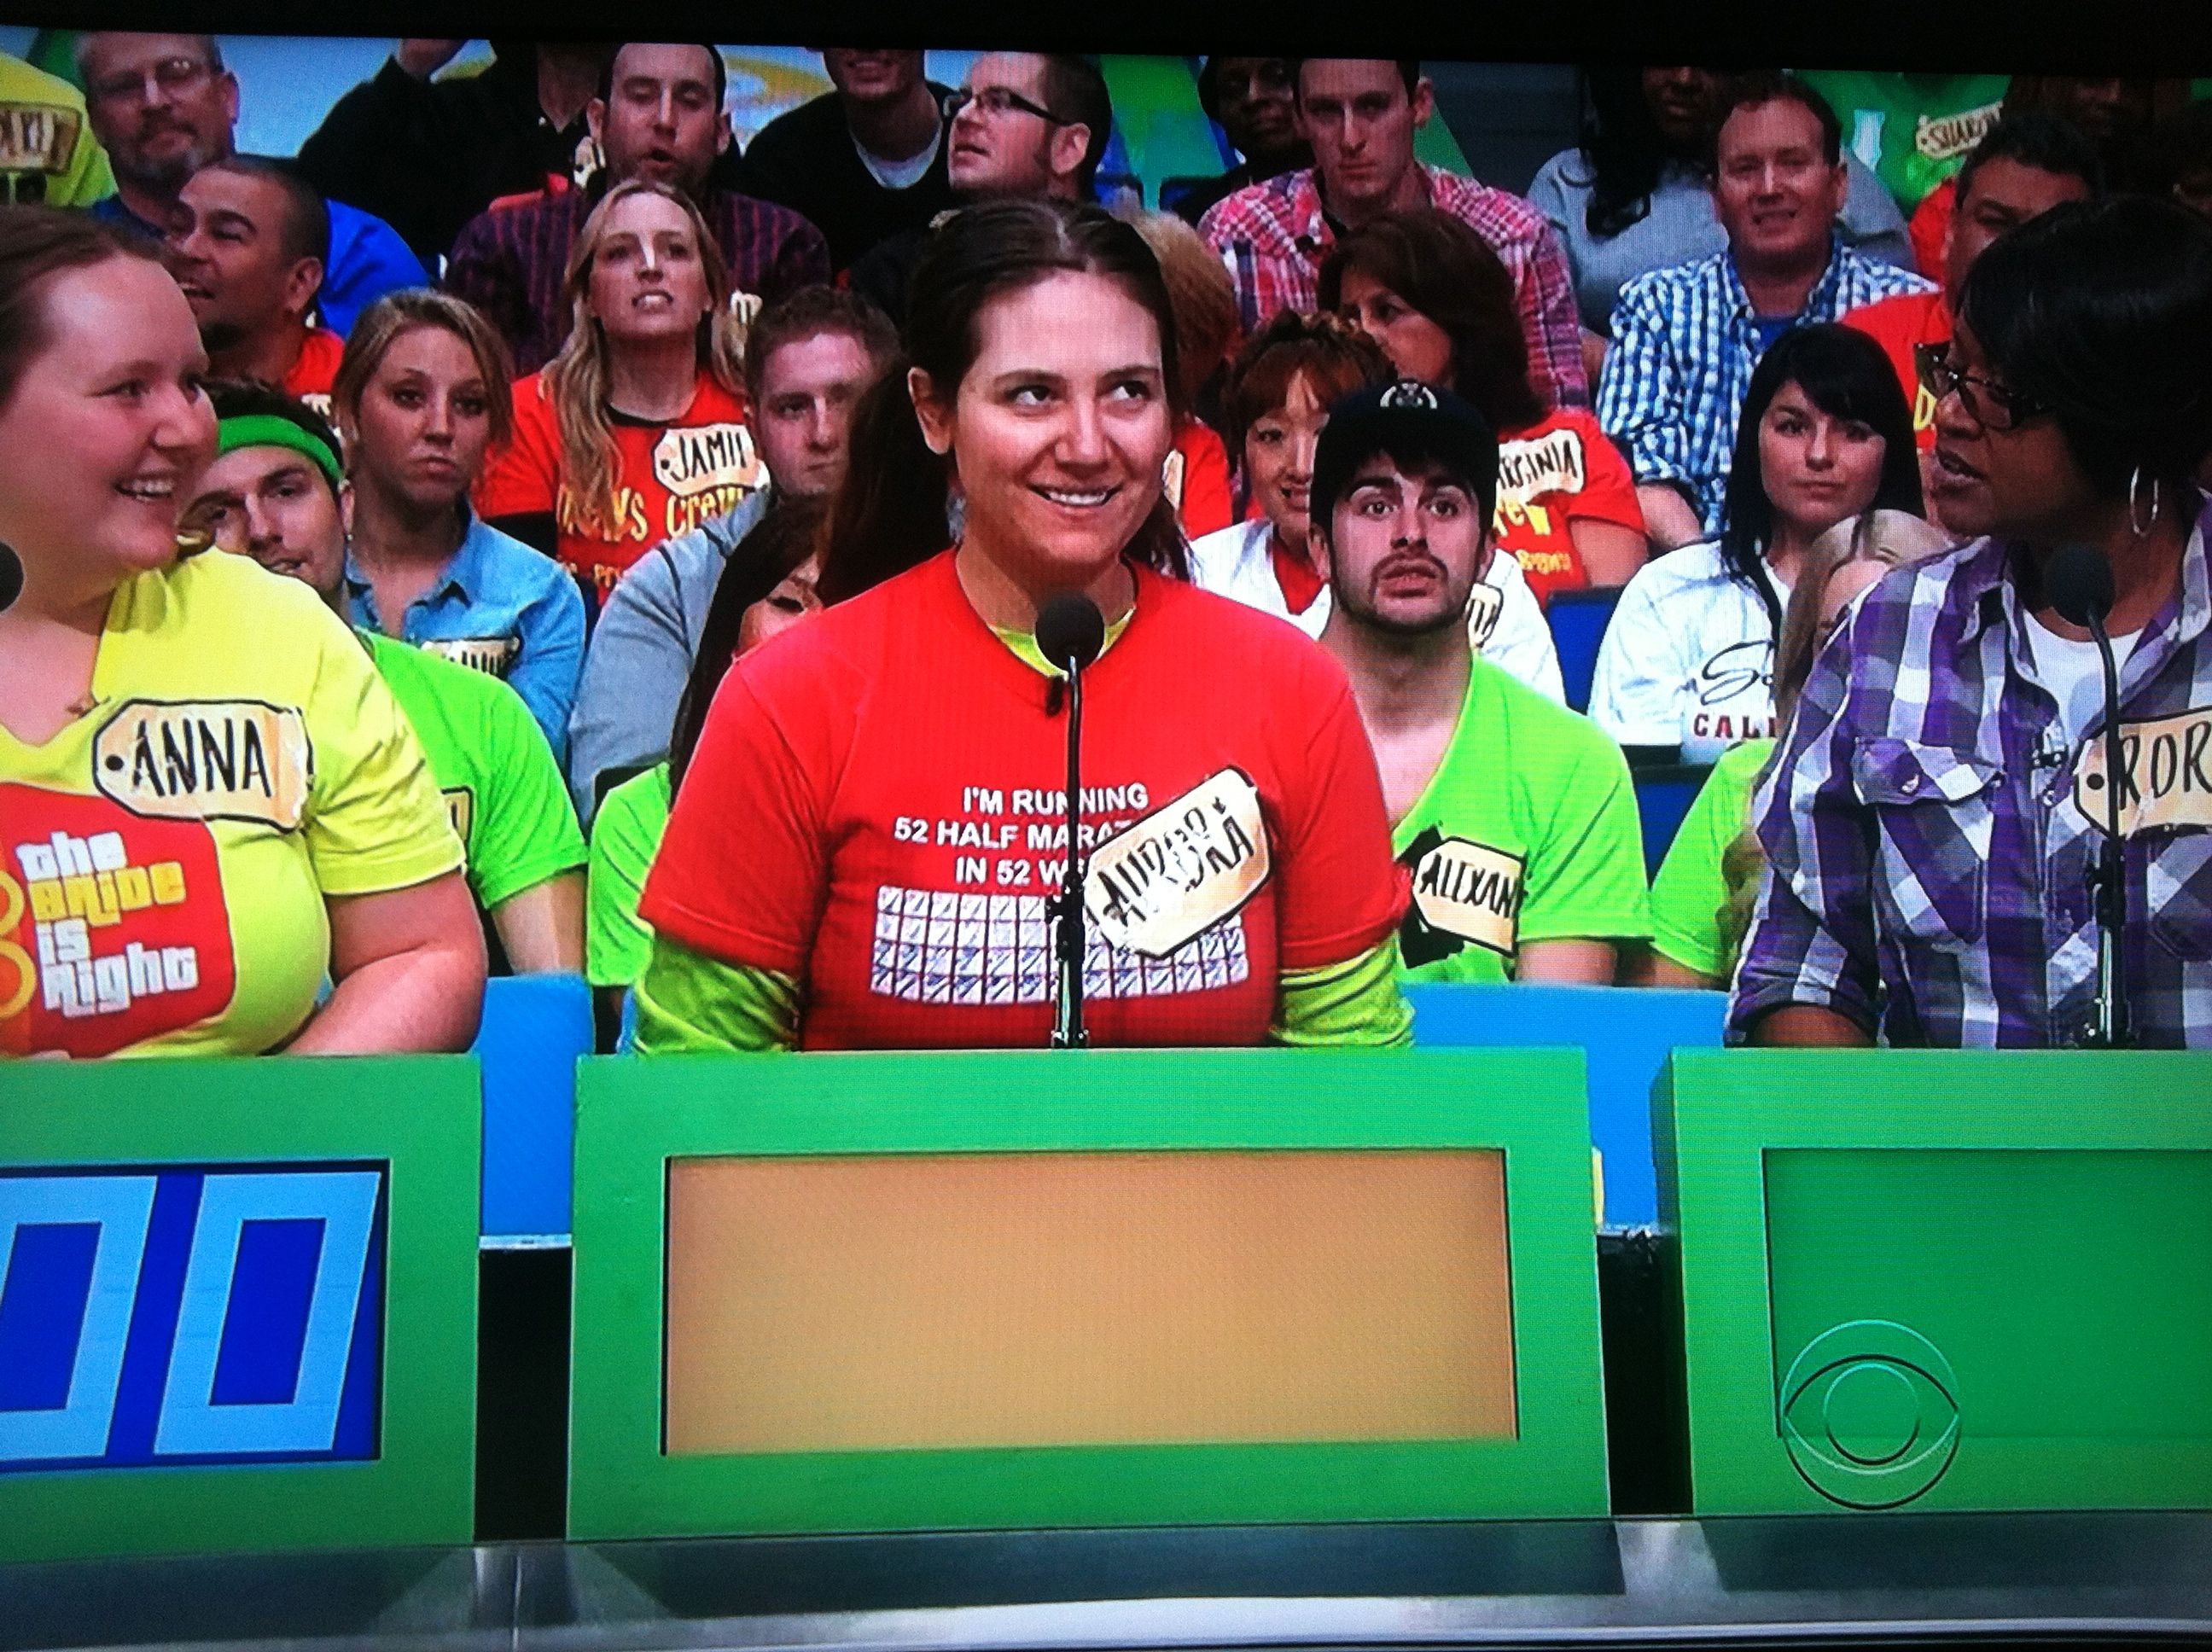 Aurora De Lucia making her bid on camcorders on contestant's row of The Price is Right